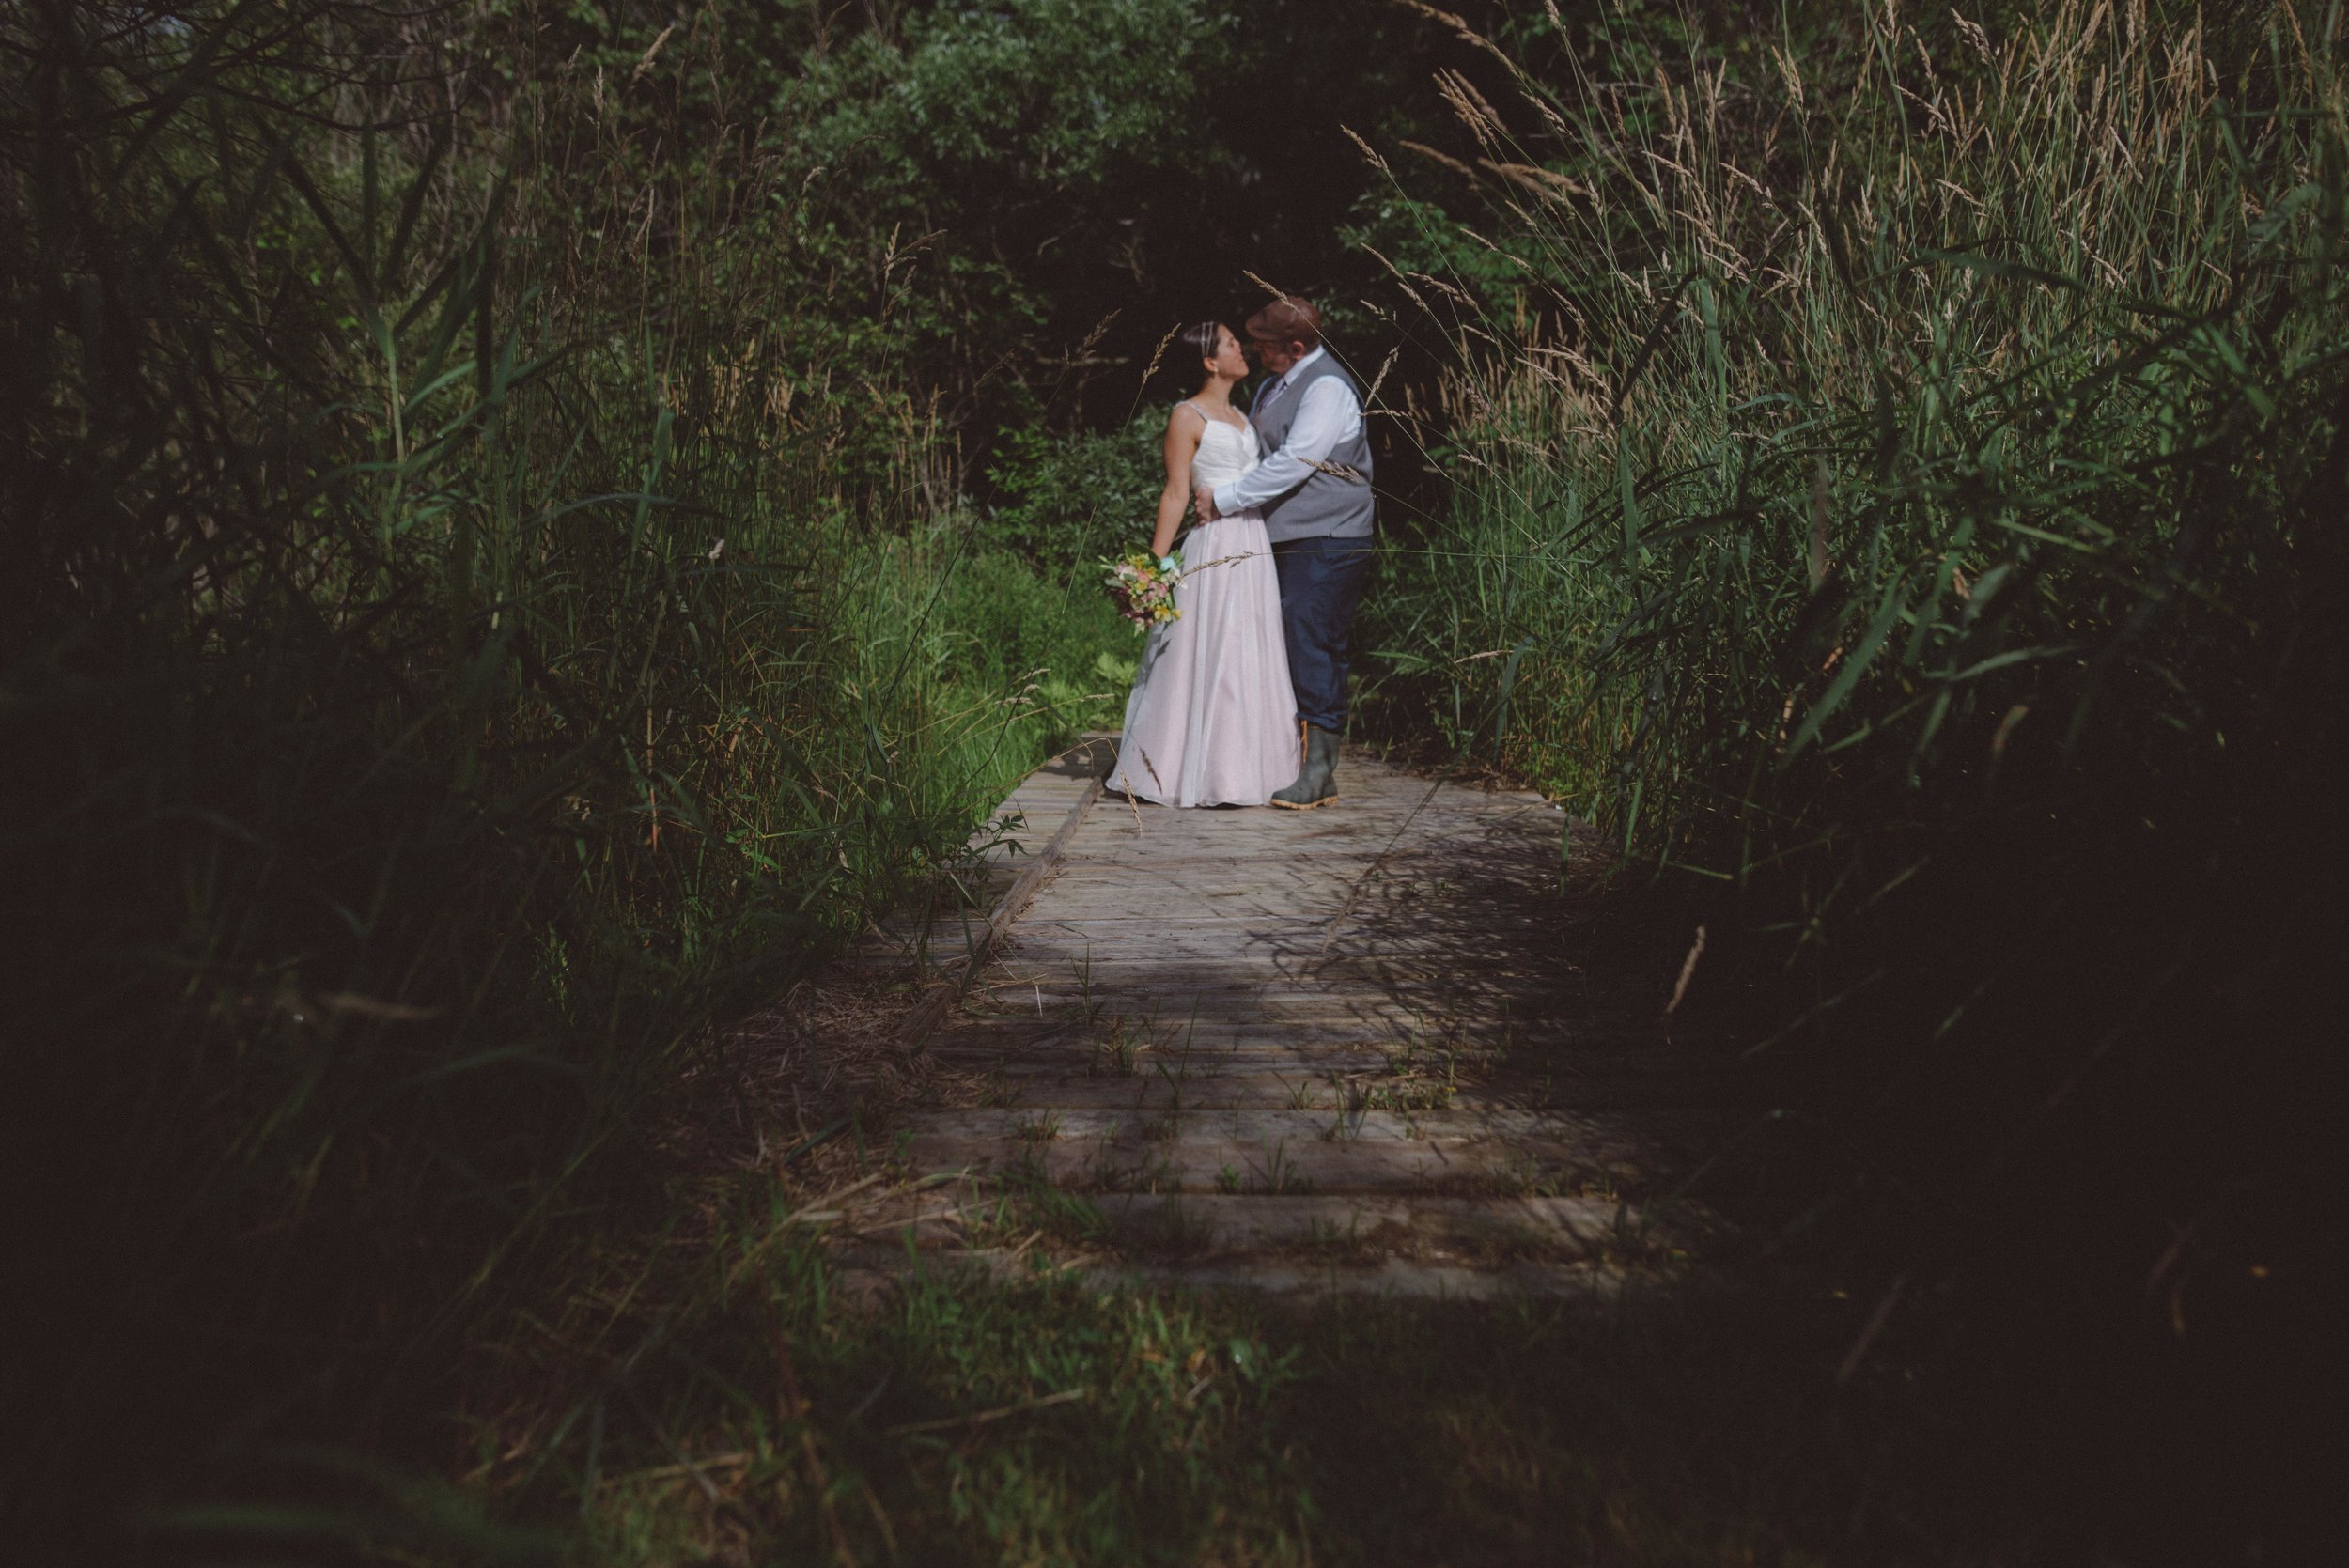 ottawa_wedding_photographer_mariage_gatineau_photographe-130.jpg